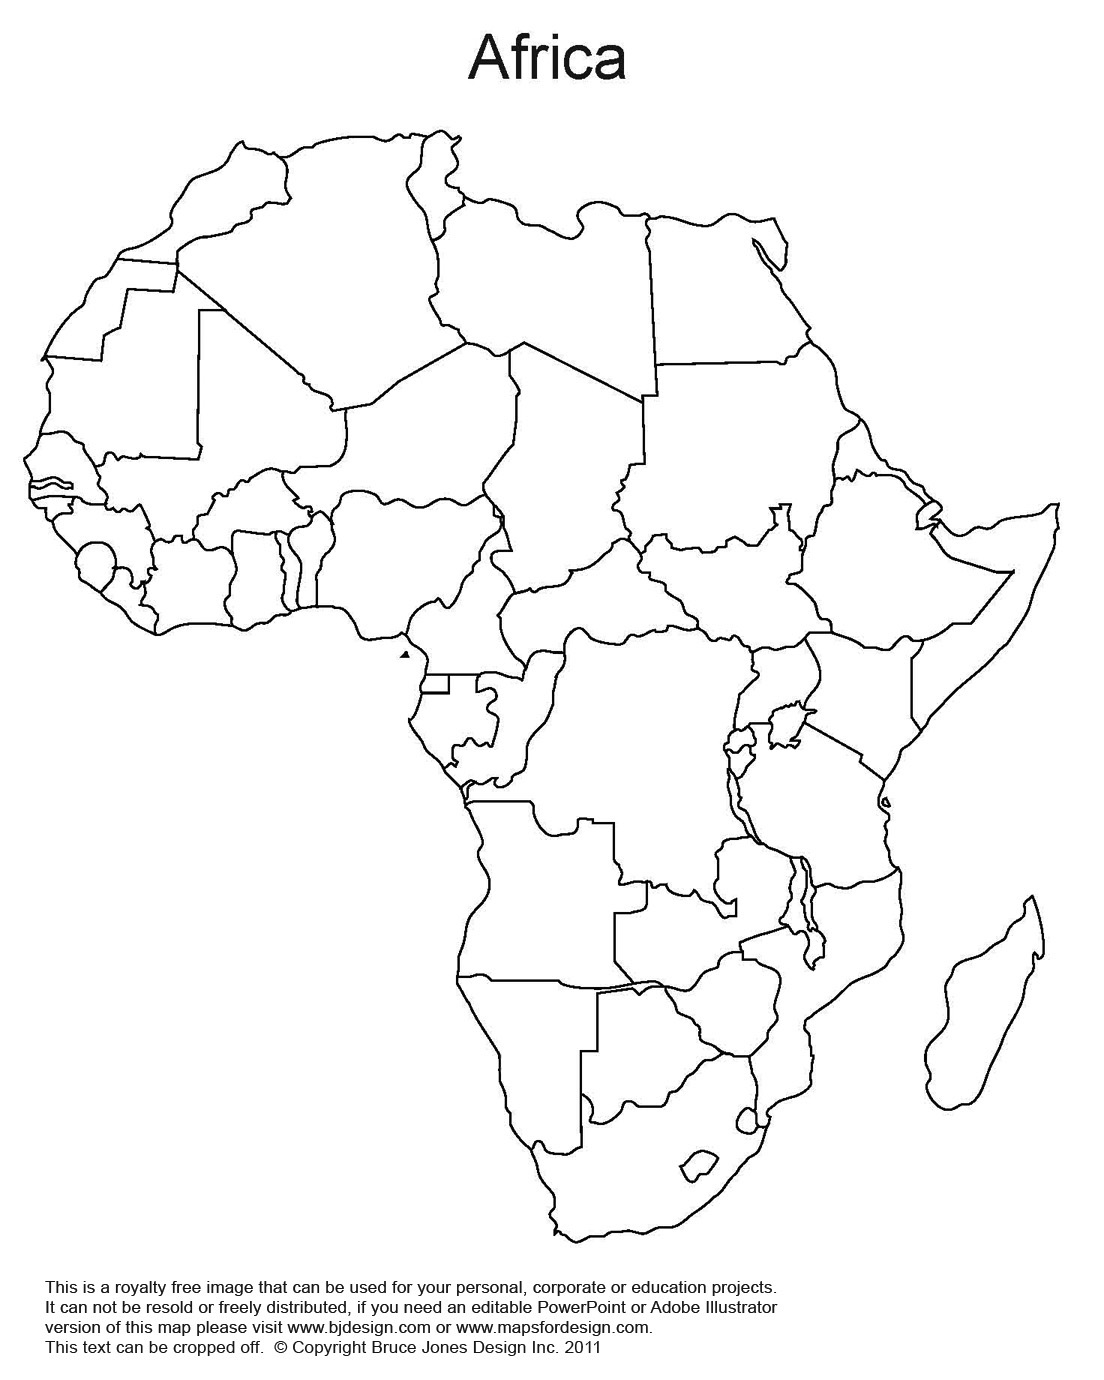 image about Map of Africa Printable referred to as Worldwide Community Printable, Blank Maps Royalty Absolutely free, jpg